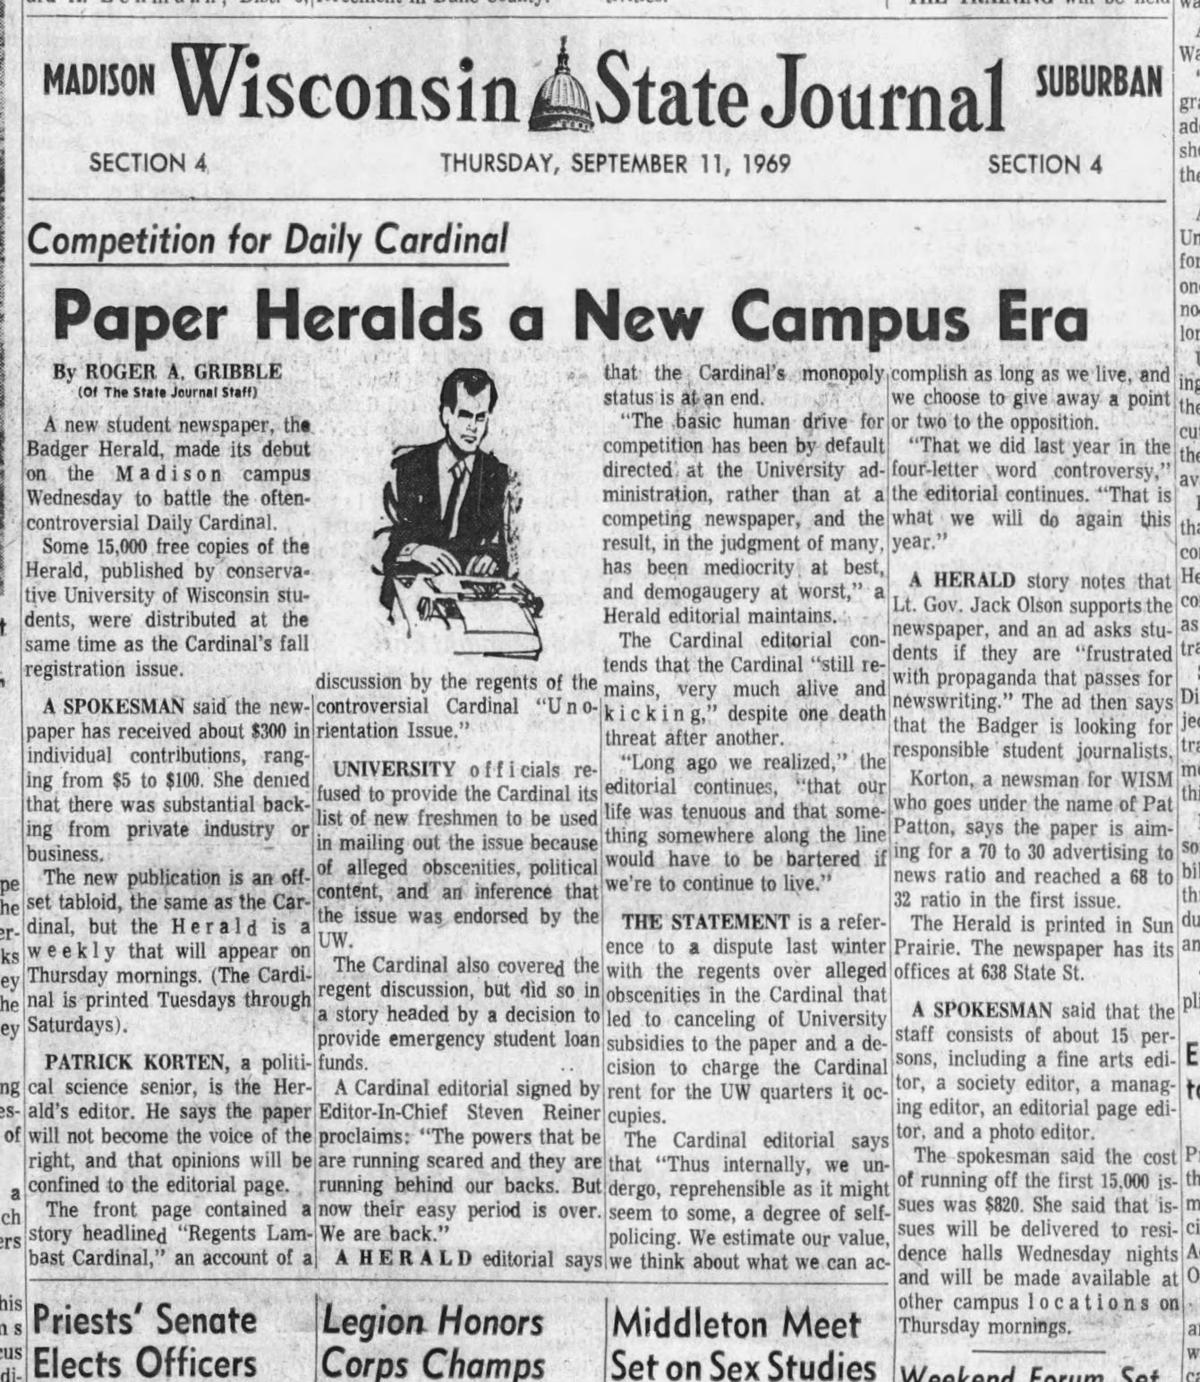 Sept. 11, 1969 edition of the Wisconsin State Journal.